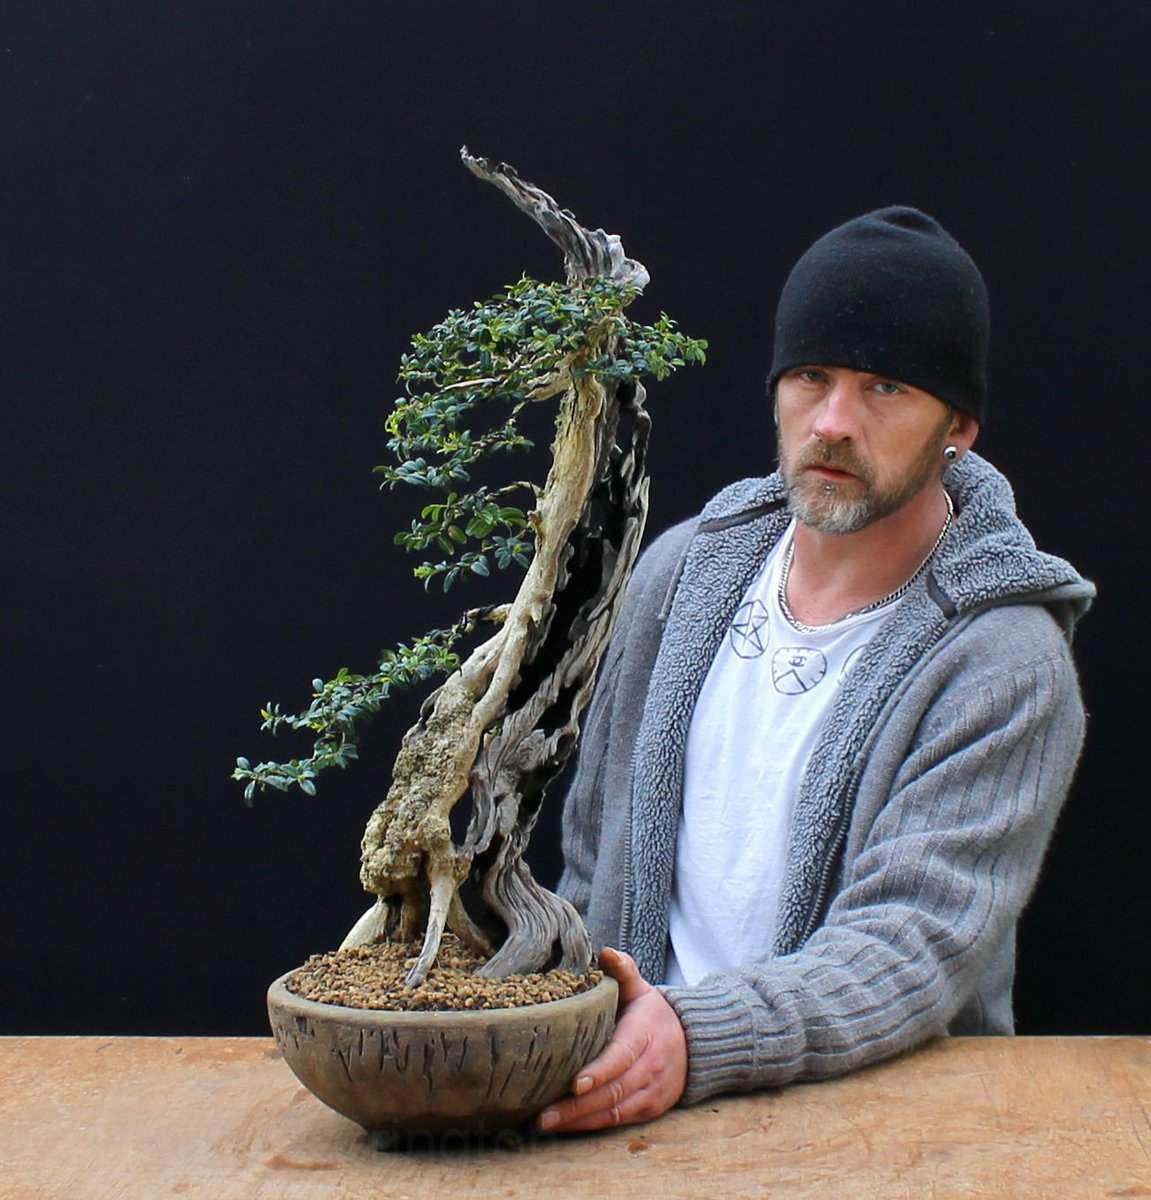 Harry Harrington On Twitter Me Pictured Alongside A Newly Styled Boxwood Bonsai Box Boxwood Deadwood Carving Styling Https T Co Ri2zllg1zl